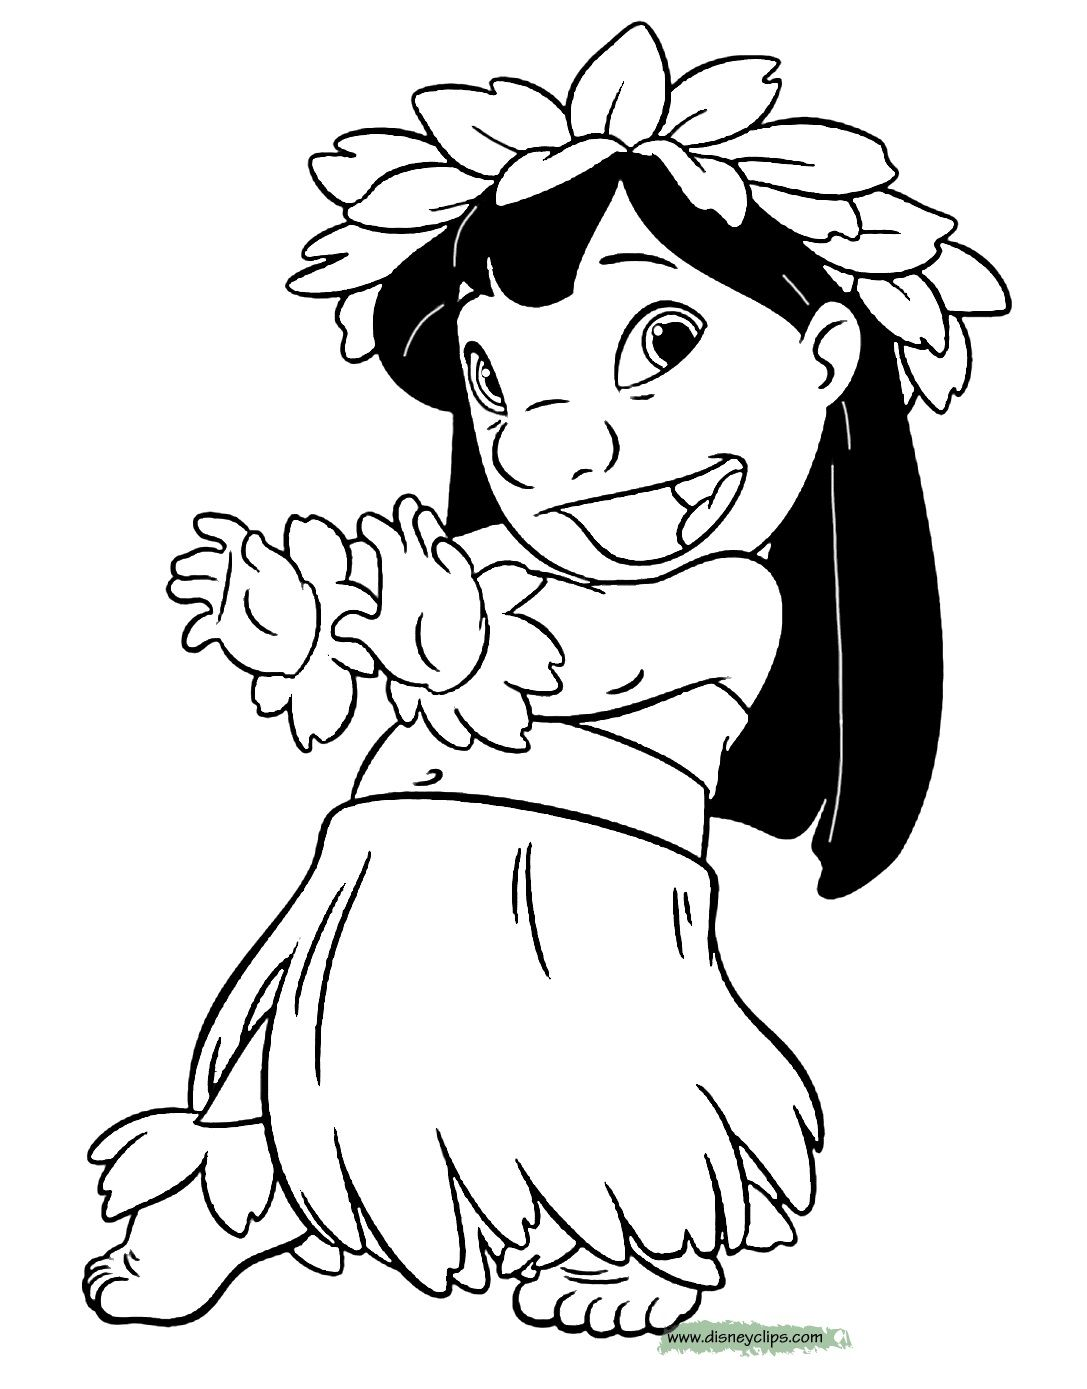 Lilo Stitch Coloring Page Disney Coloring Pages Coloring Pages